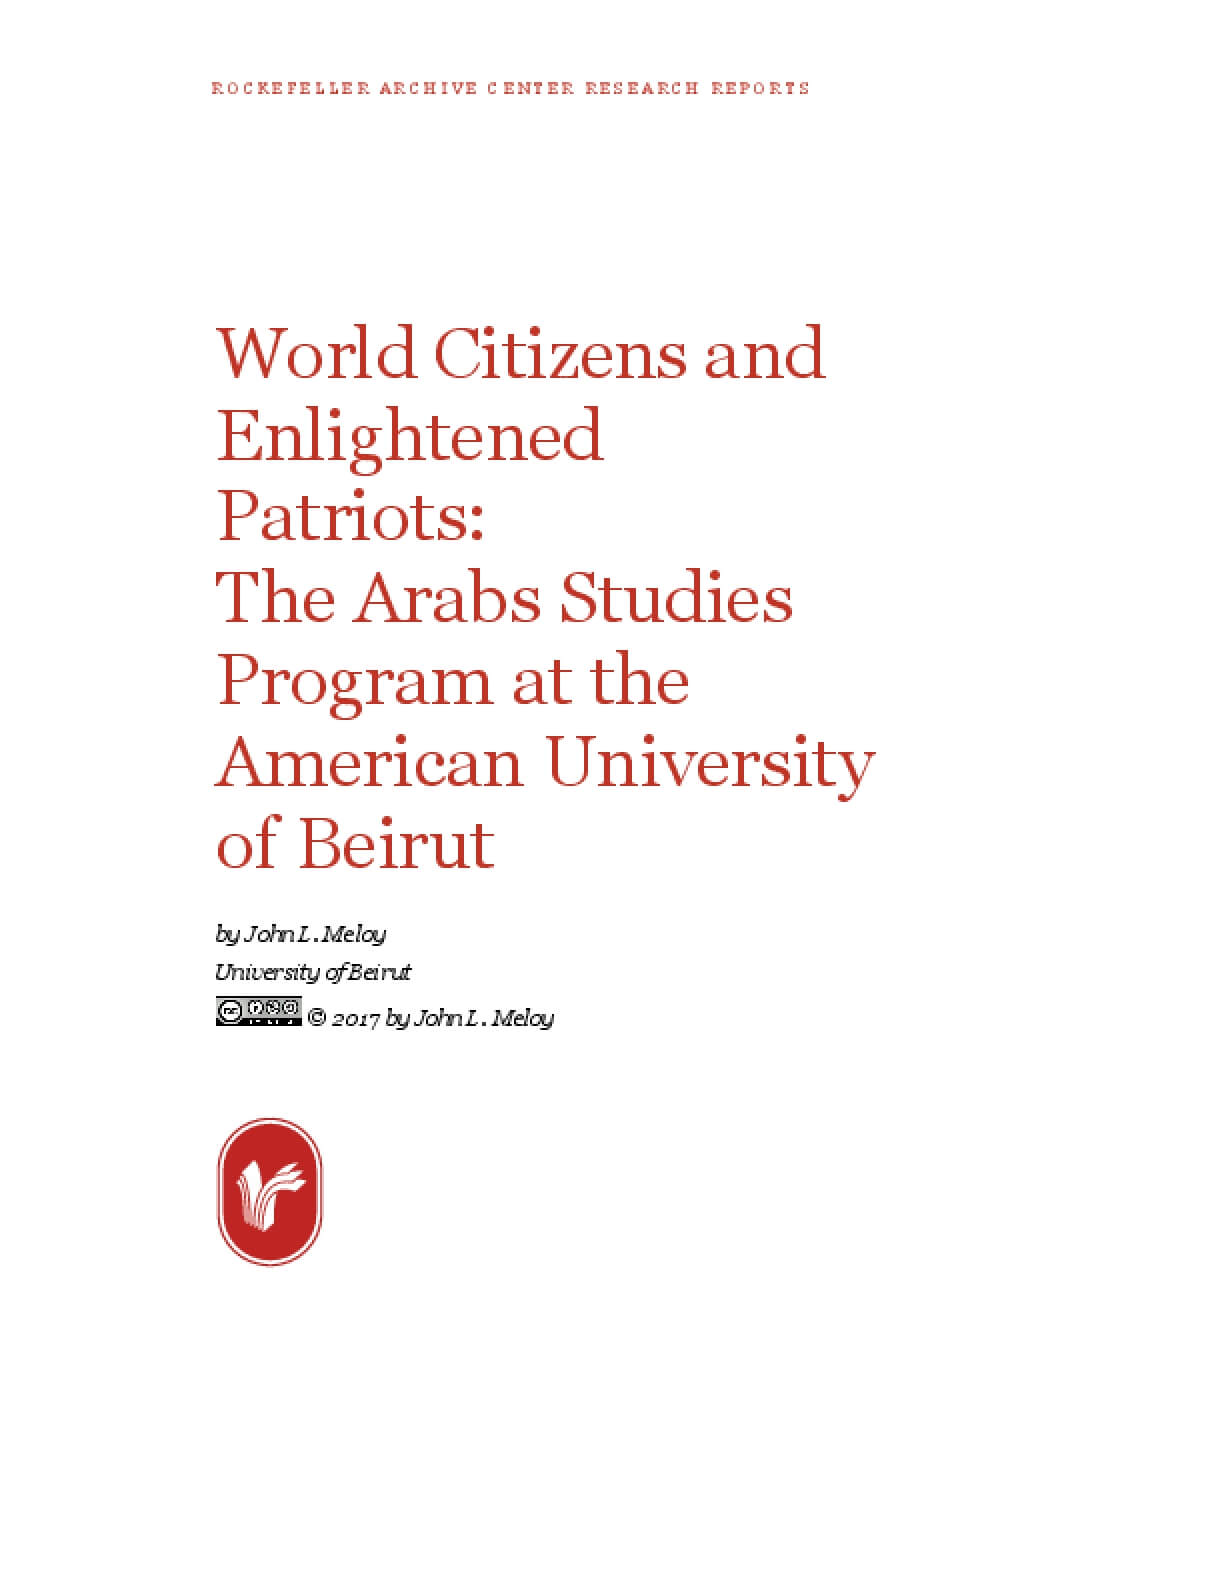 World Citizens and Enlightened Patriots: The Arabs Studies Program at the American University of Beirut